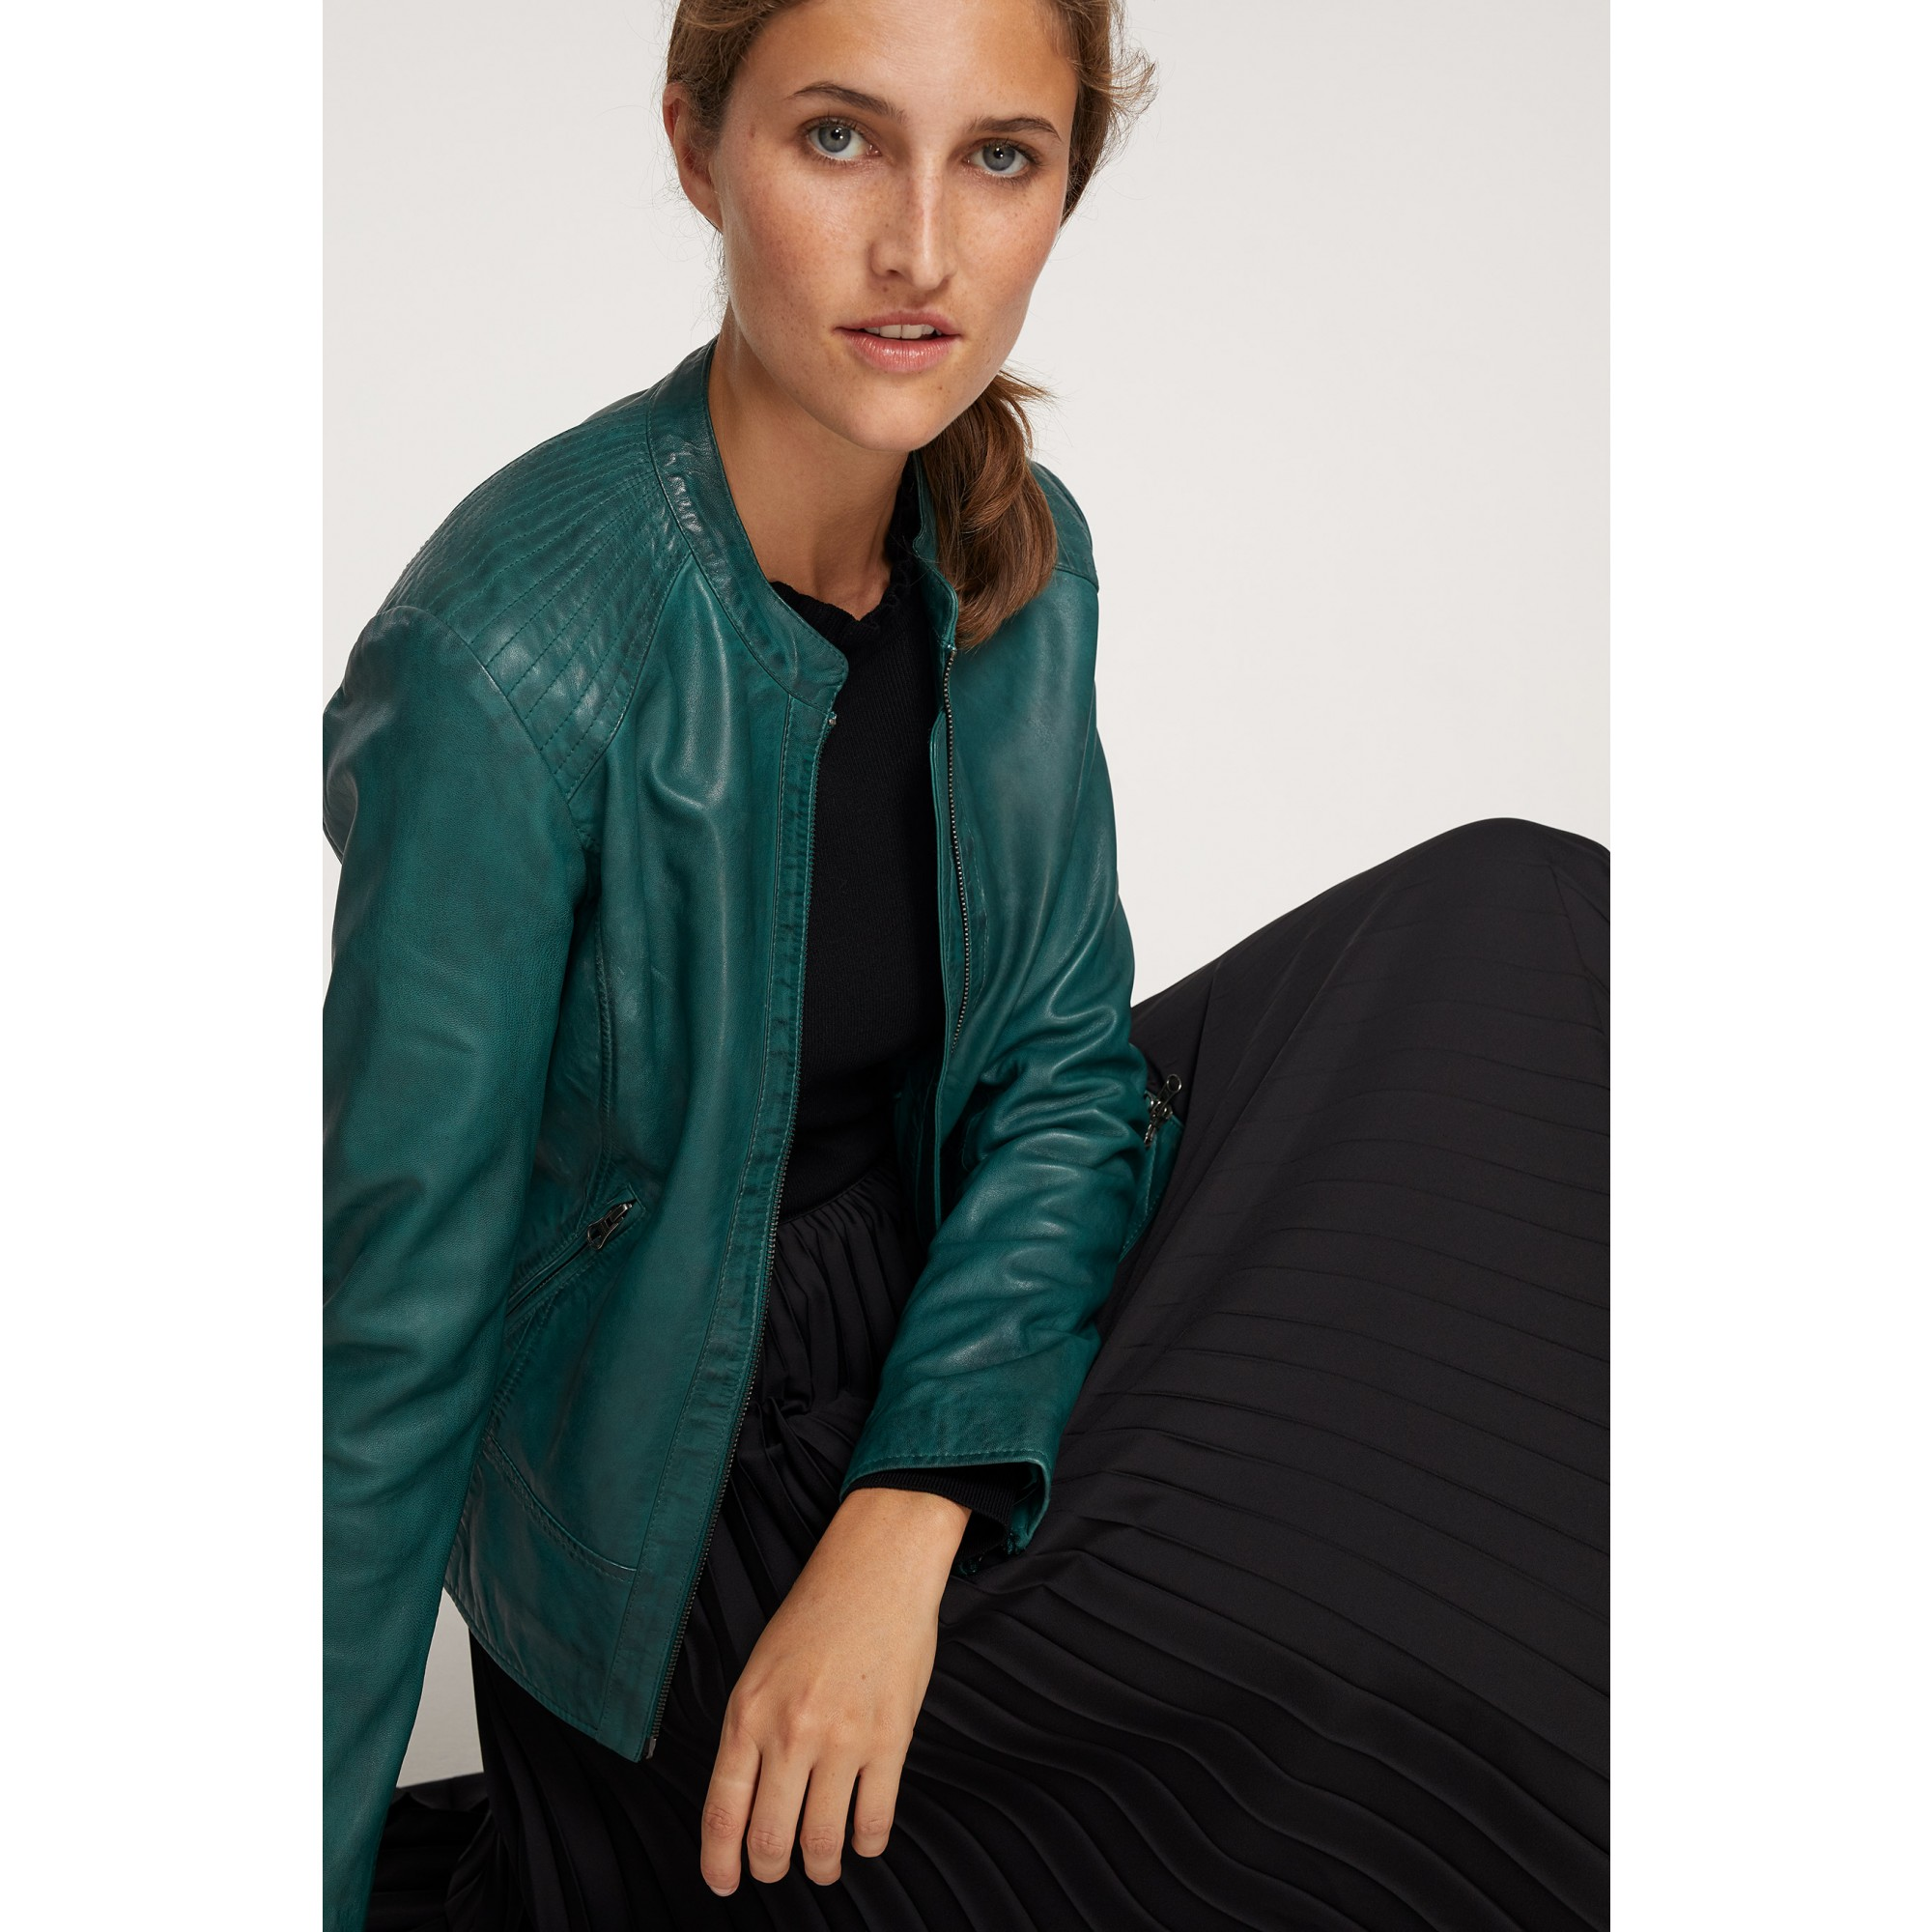 Lederjacke, emerald green 91098000-0655